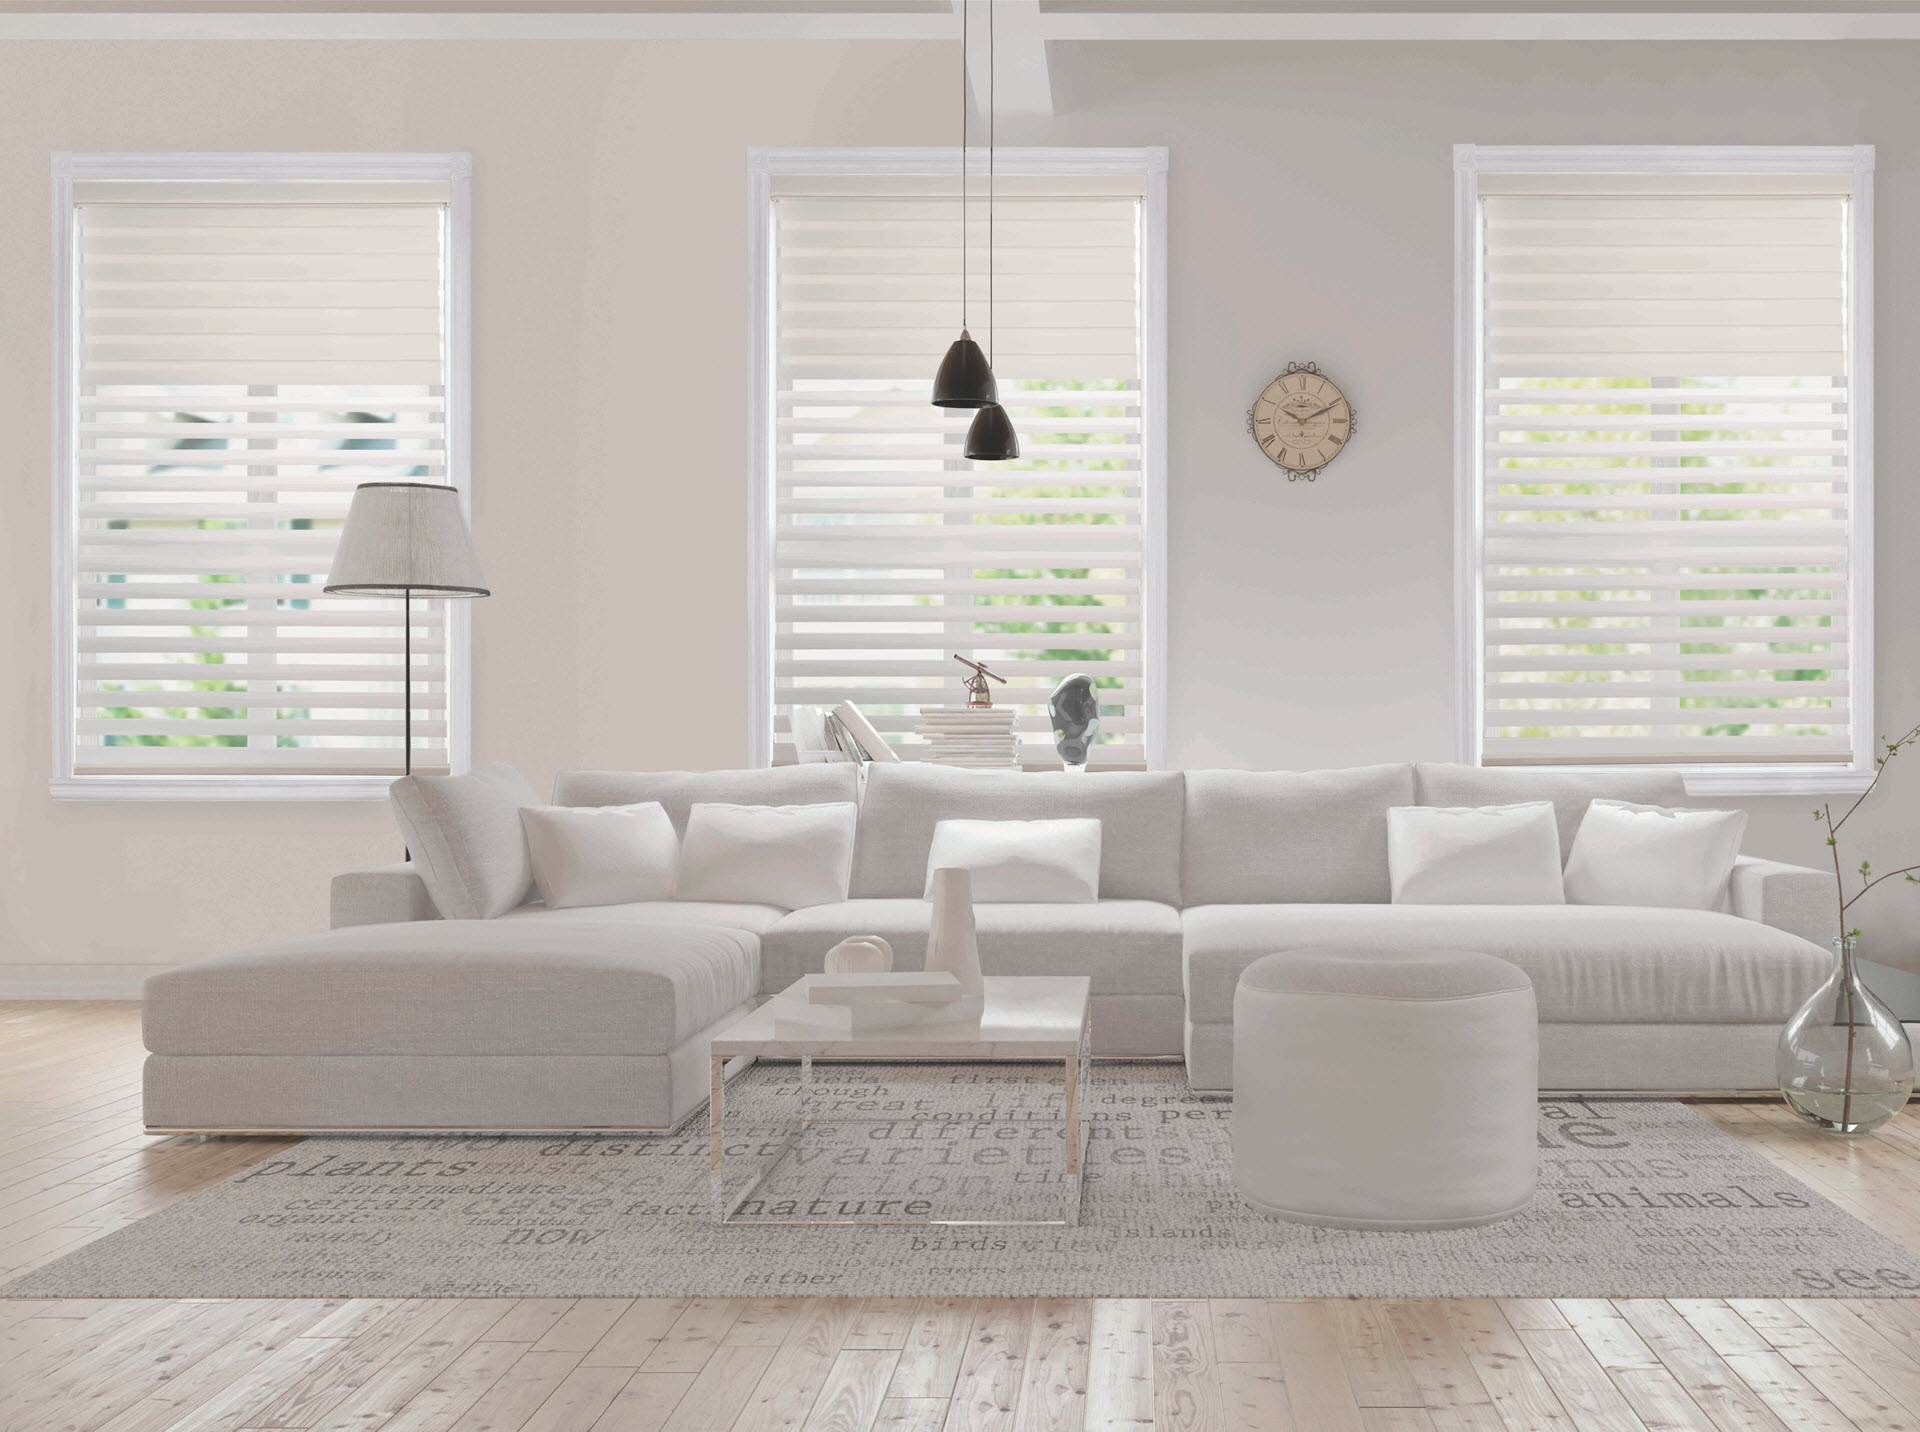 Motorized blinds convenient lifestyle northshield motors inspire yourself elegance and opulence are what motorized blinds solutioingenieria Images